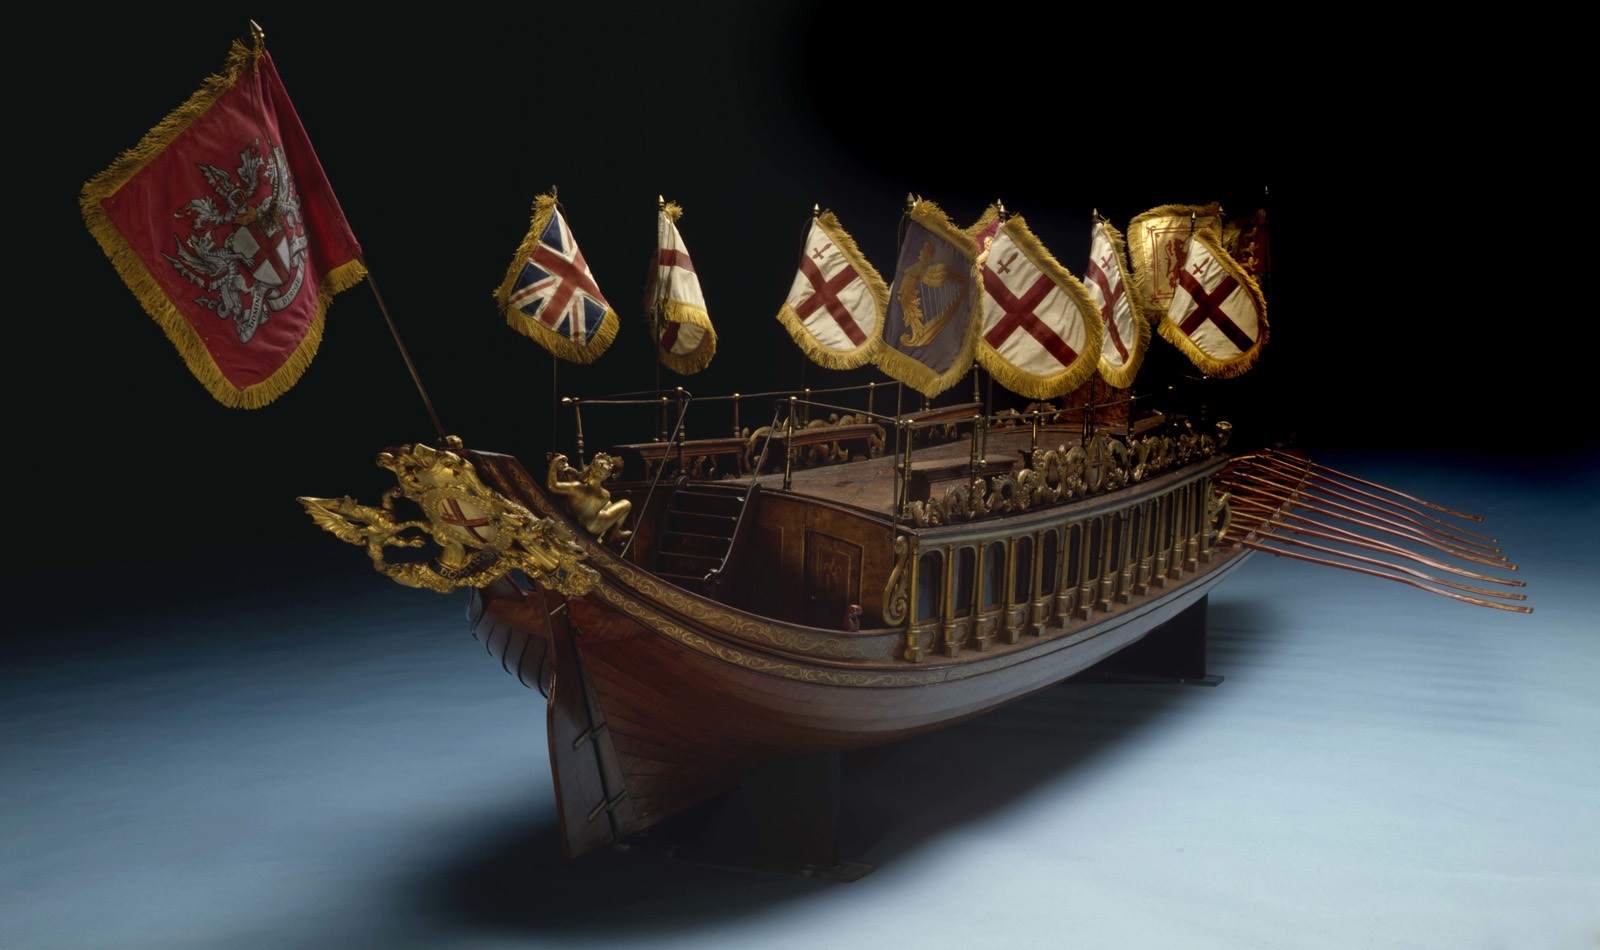 Ceremonial barge of the Mayor of London model, on display in the City and River gallery, Museum of London Docklands.